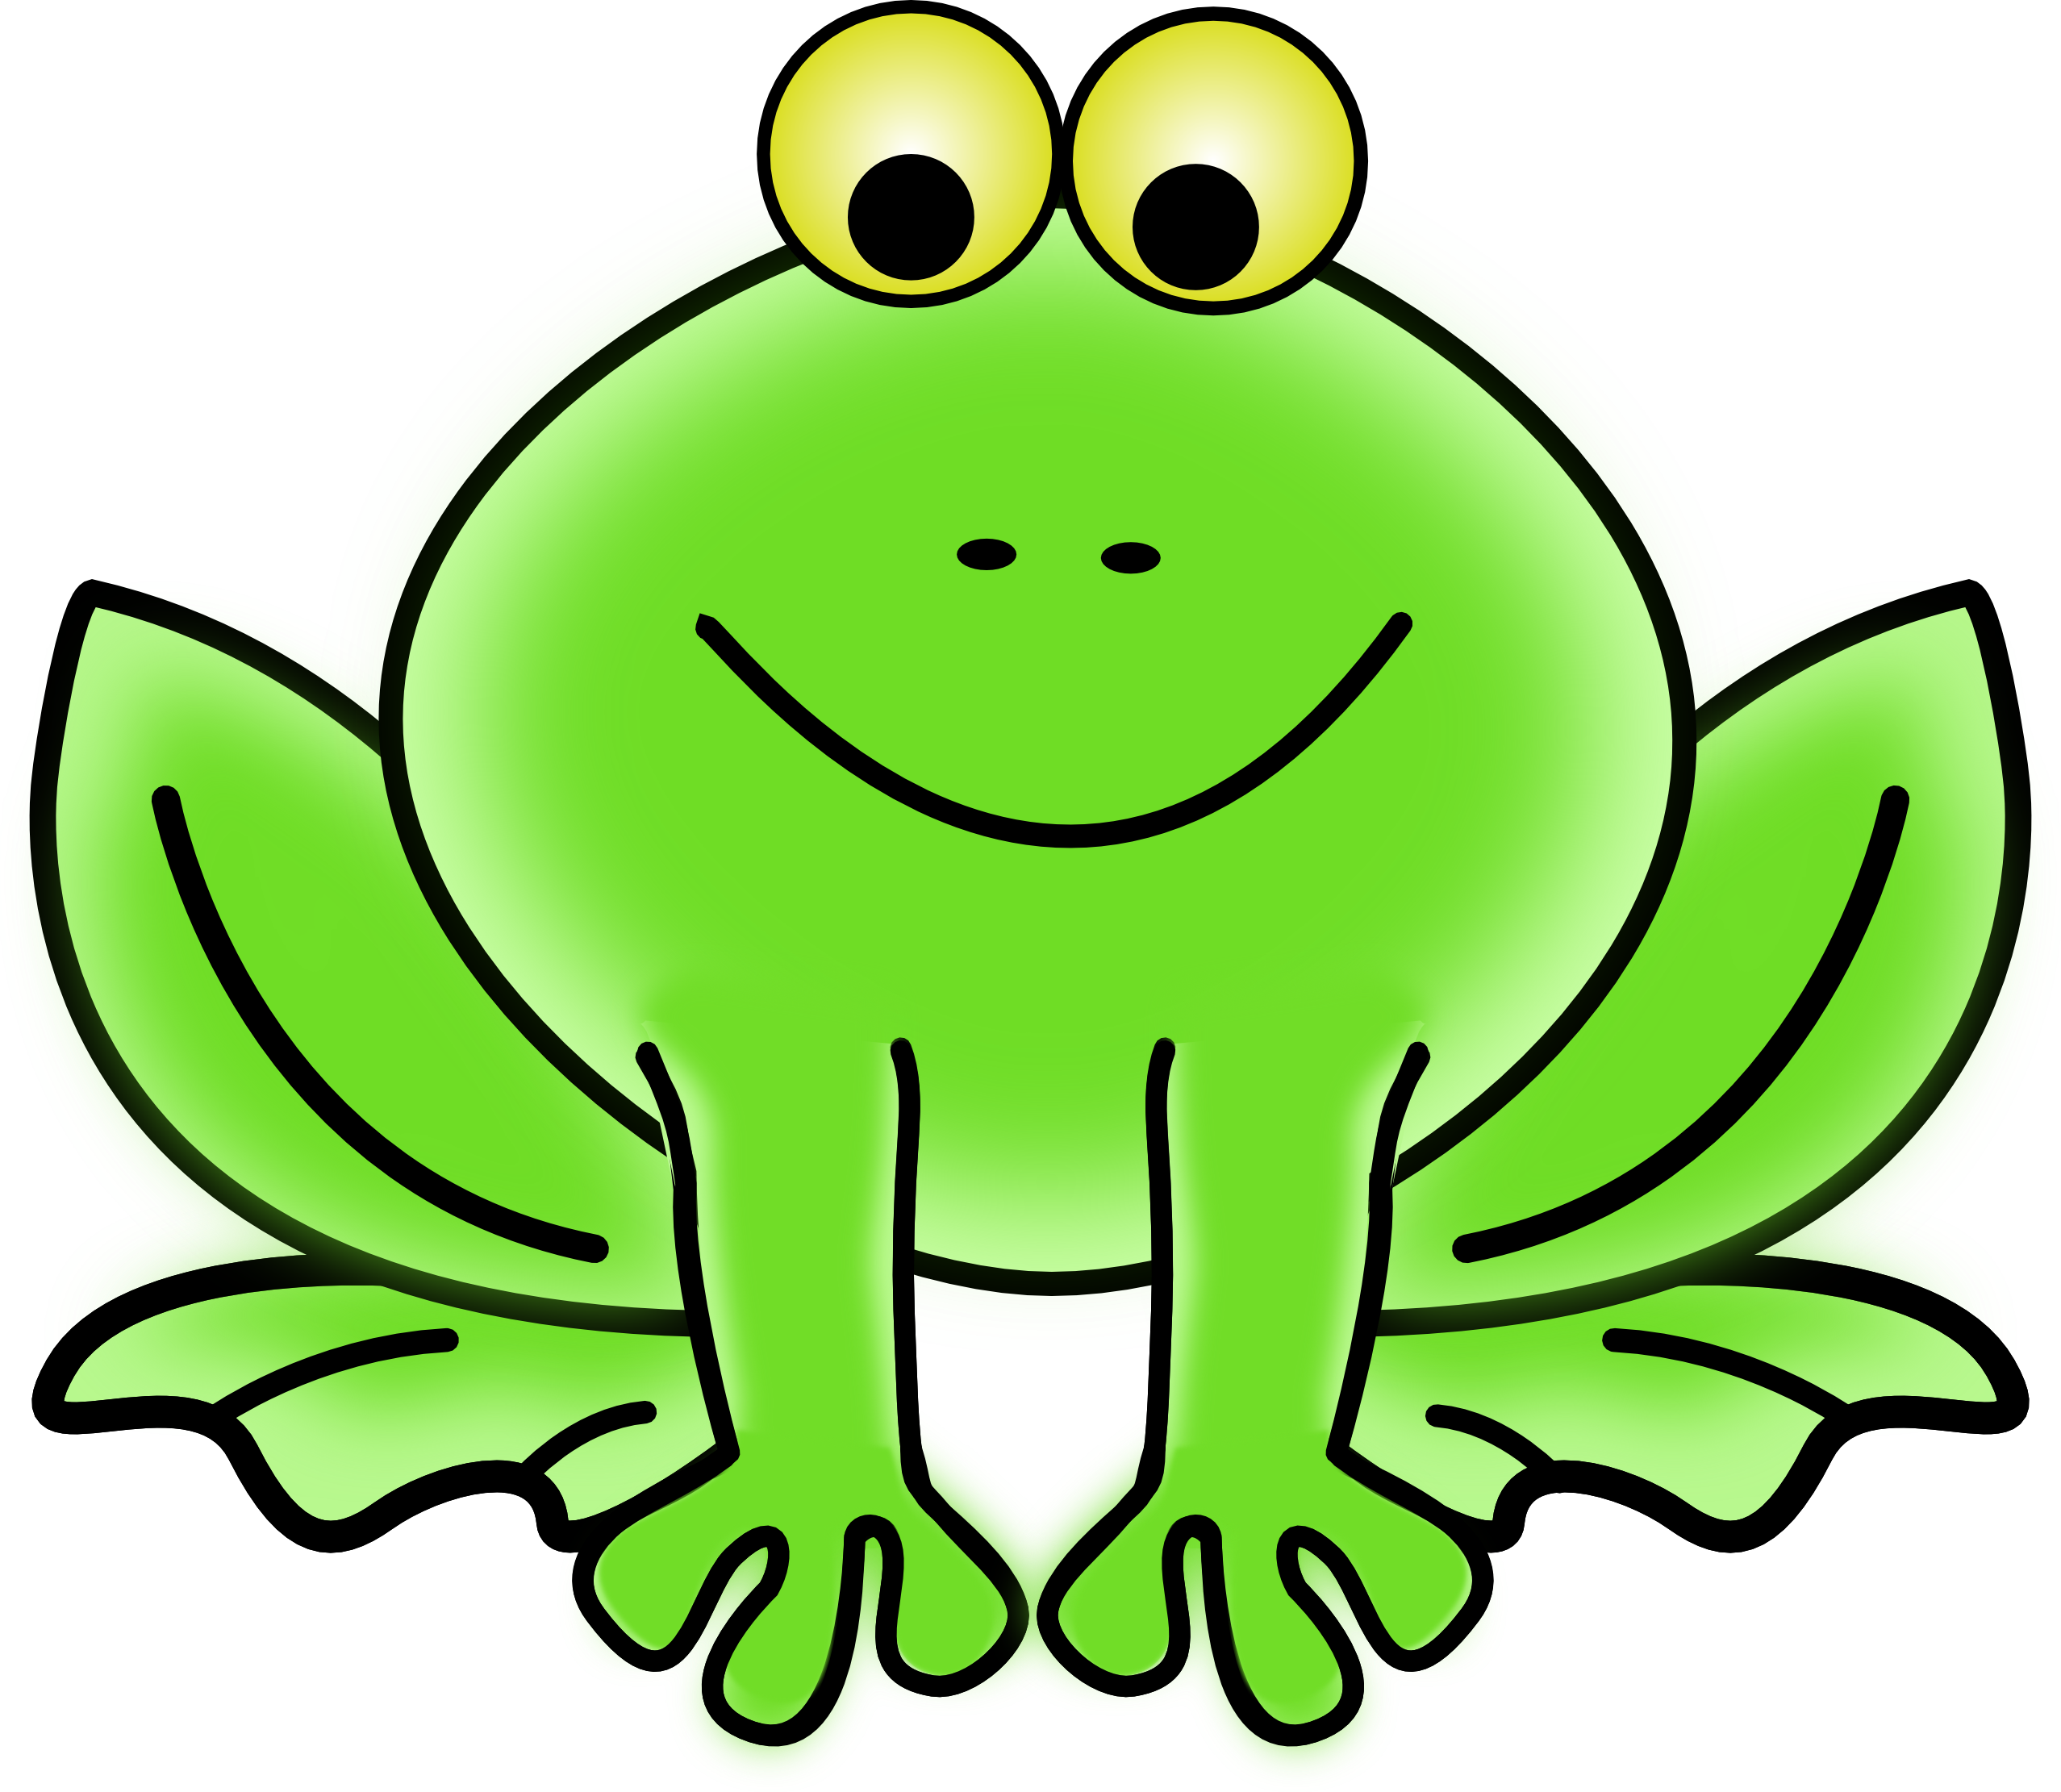 2555x2222 Frog Clip Art For Teachers Free Clipart Images